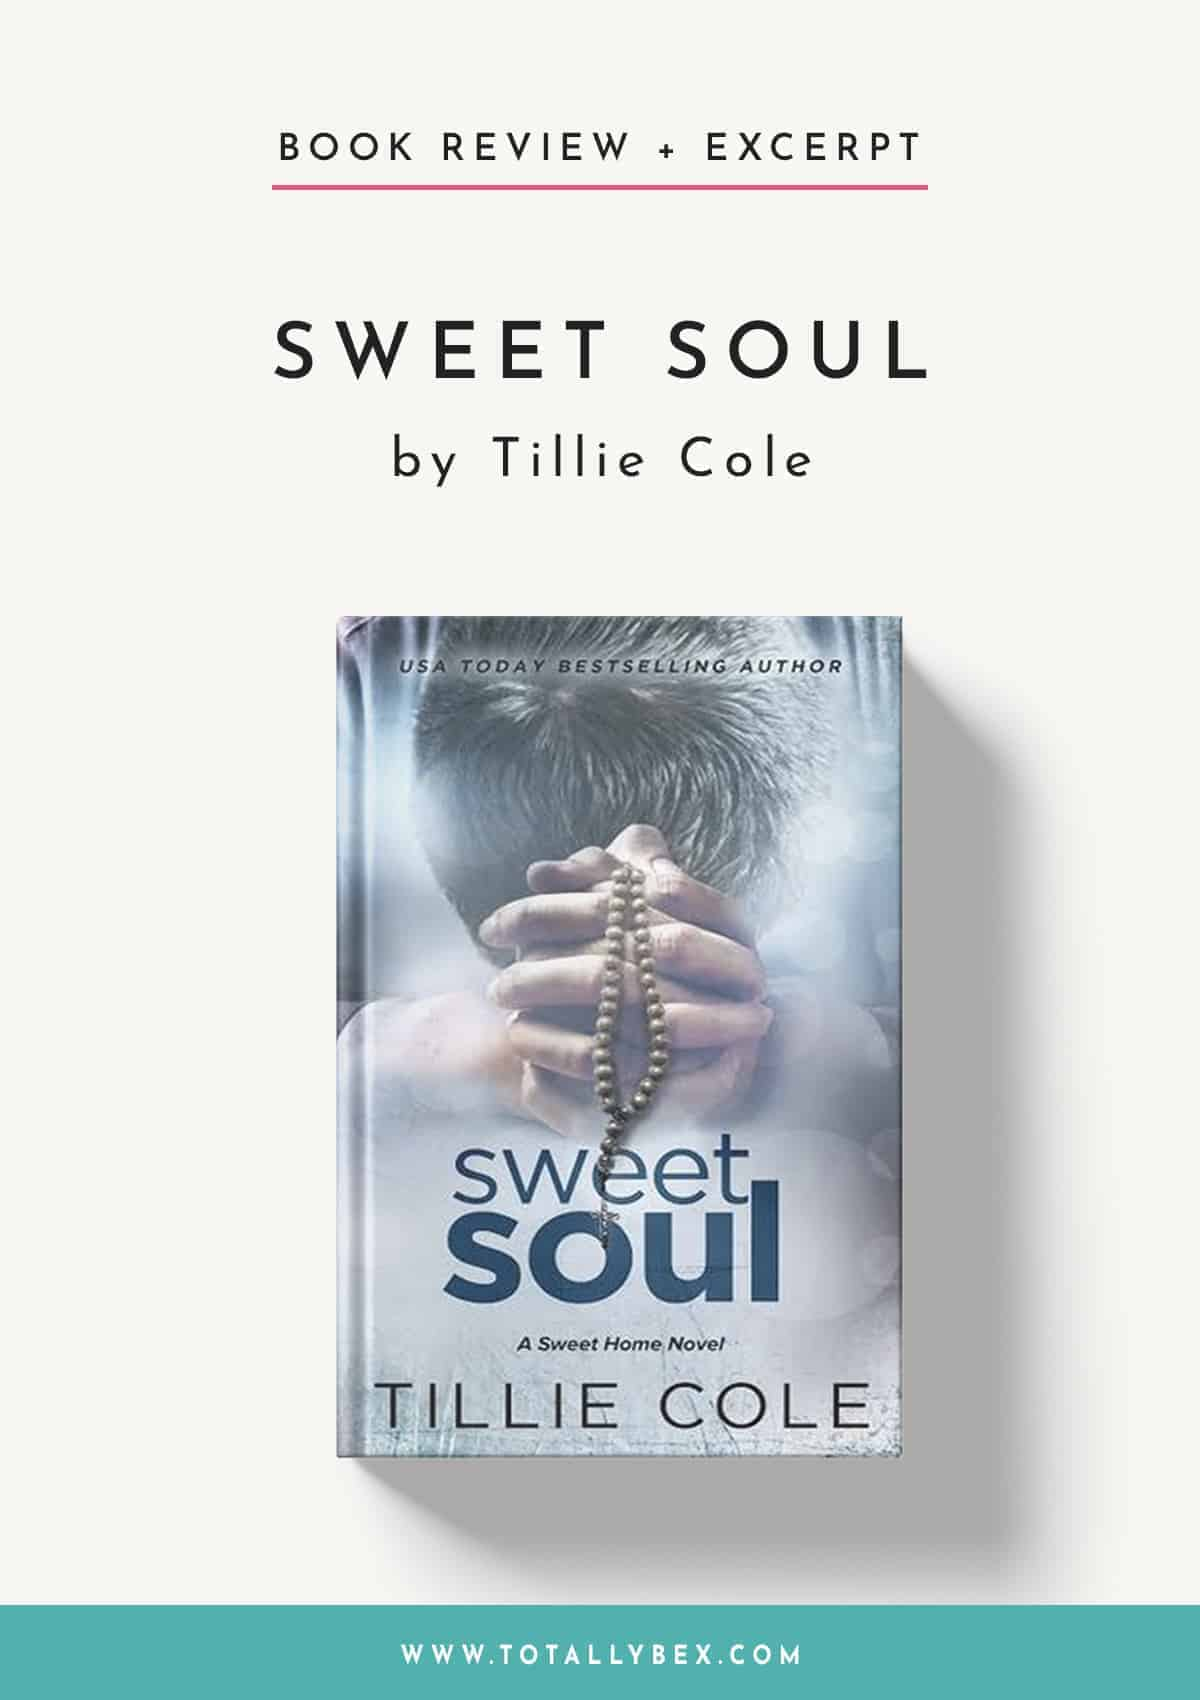 Sweet Soul by Tillie Cole-Book Review+Excerpt